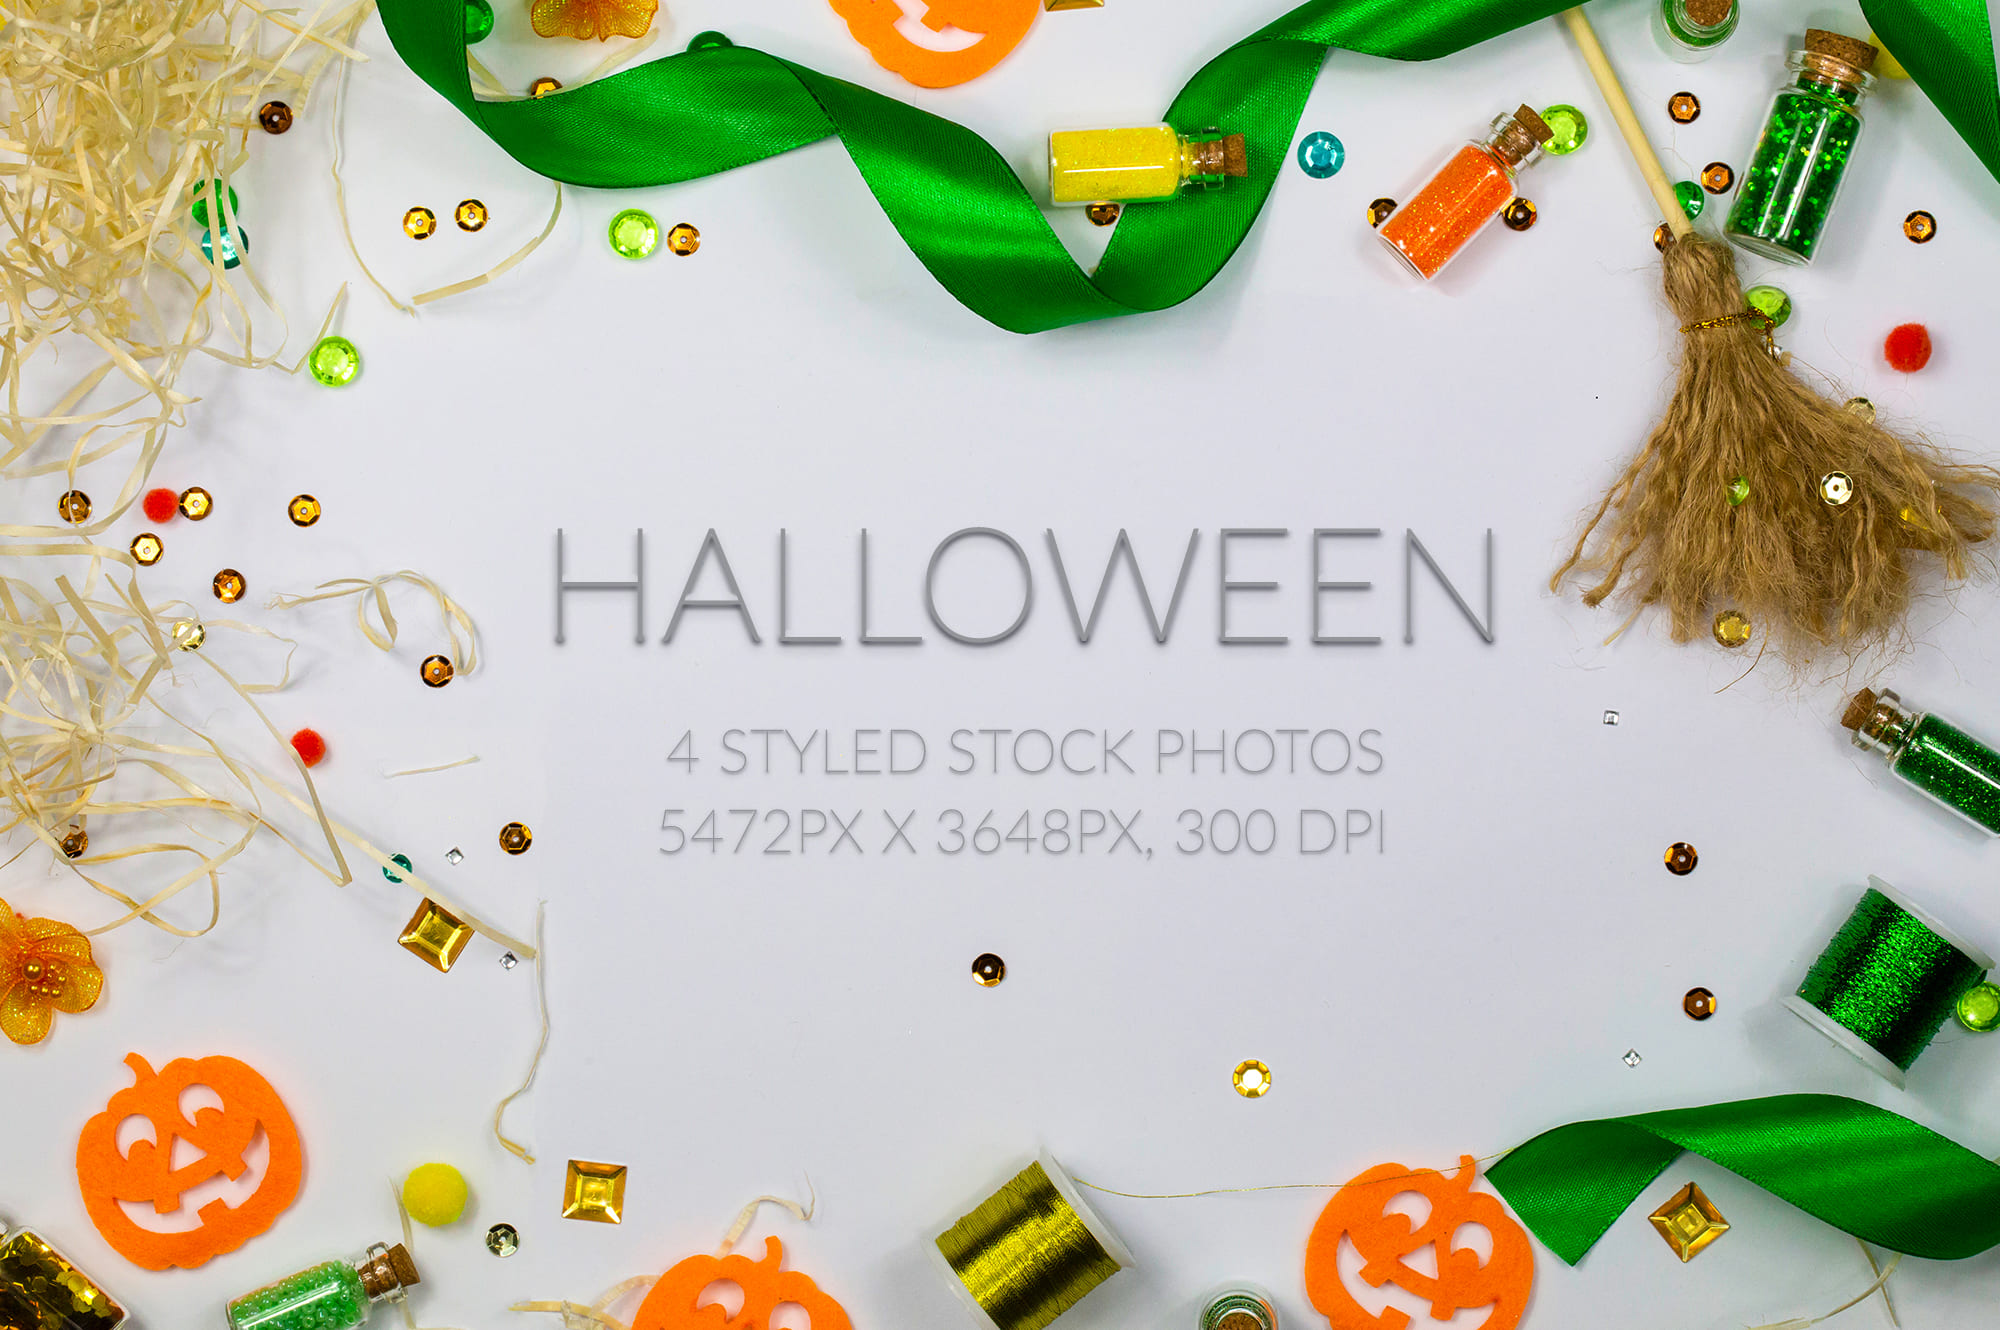 Halloween Cover Photos Bundle - 6 Halloween Stock Photos